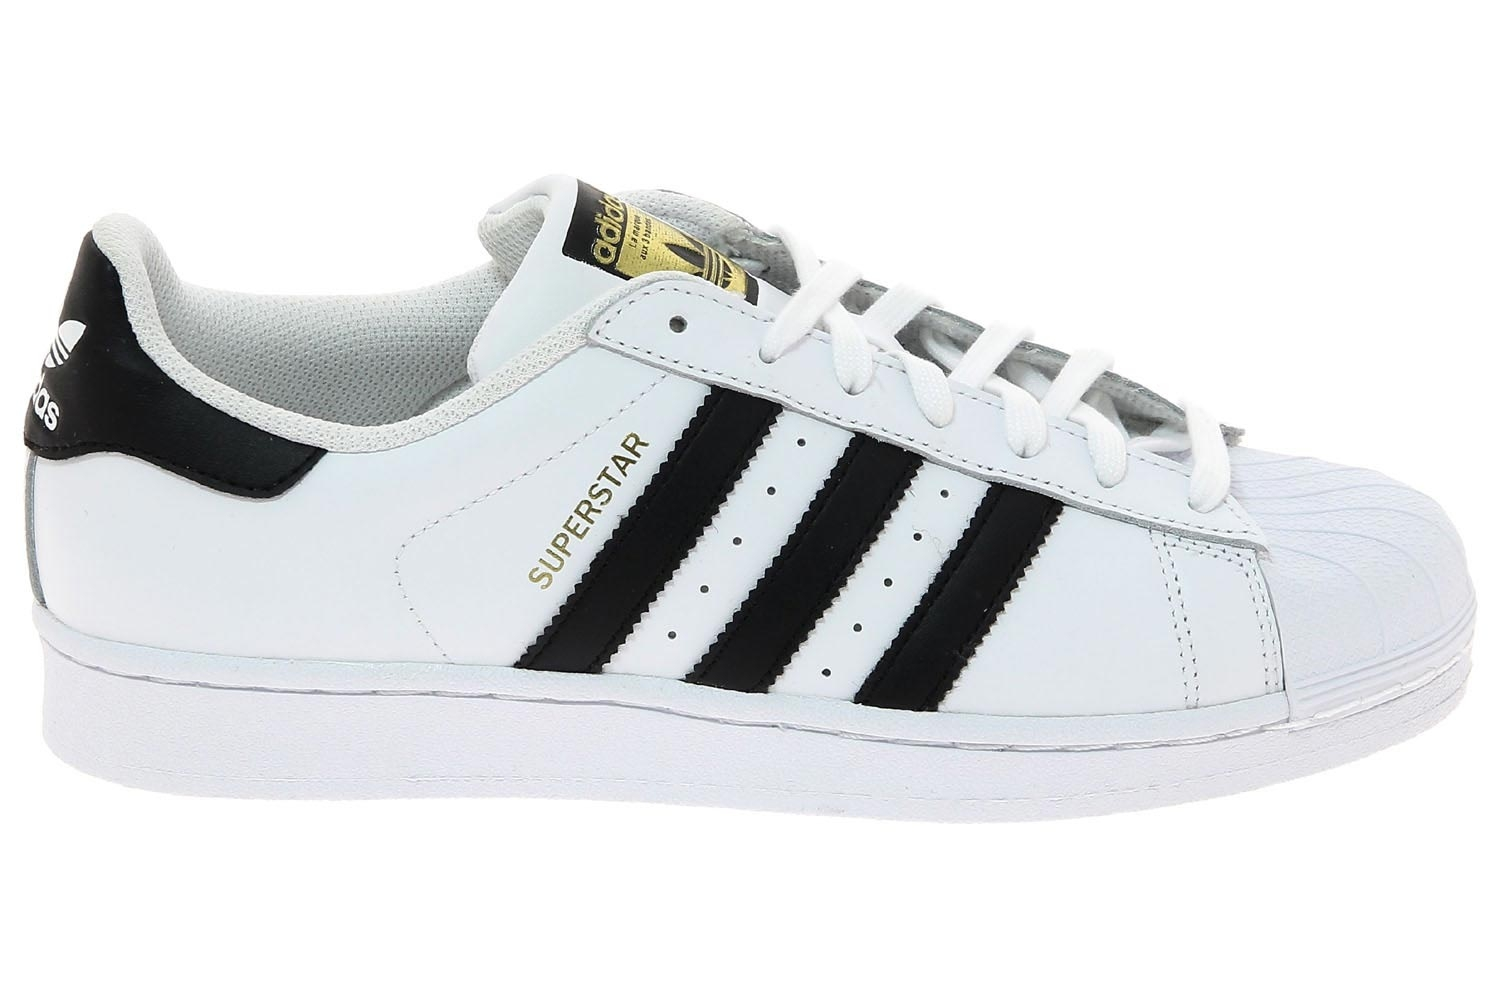 Superstar Baskets Mode Chaussures Blanc Adidas 8NPwX0Onk